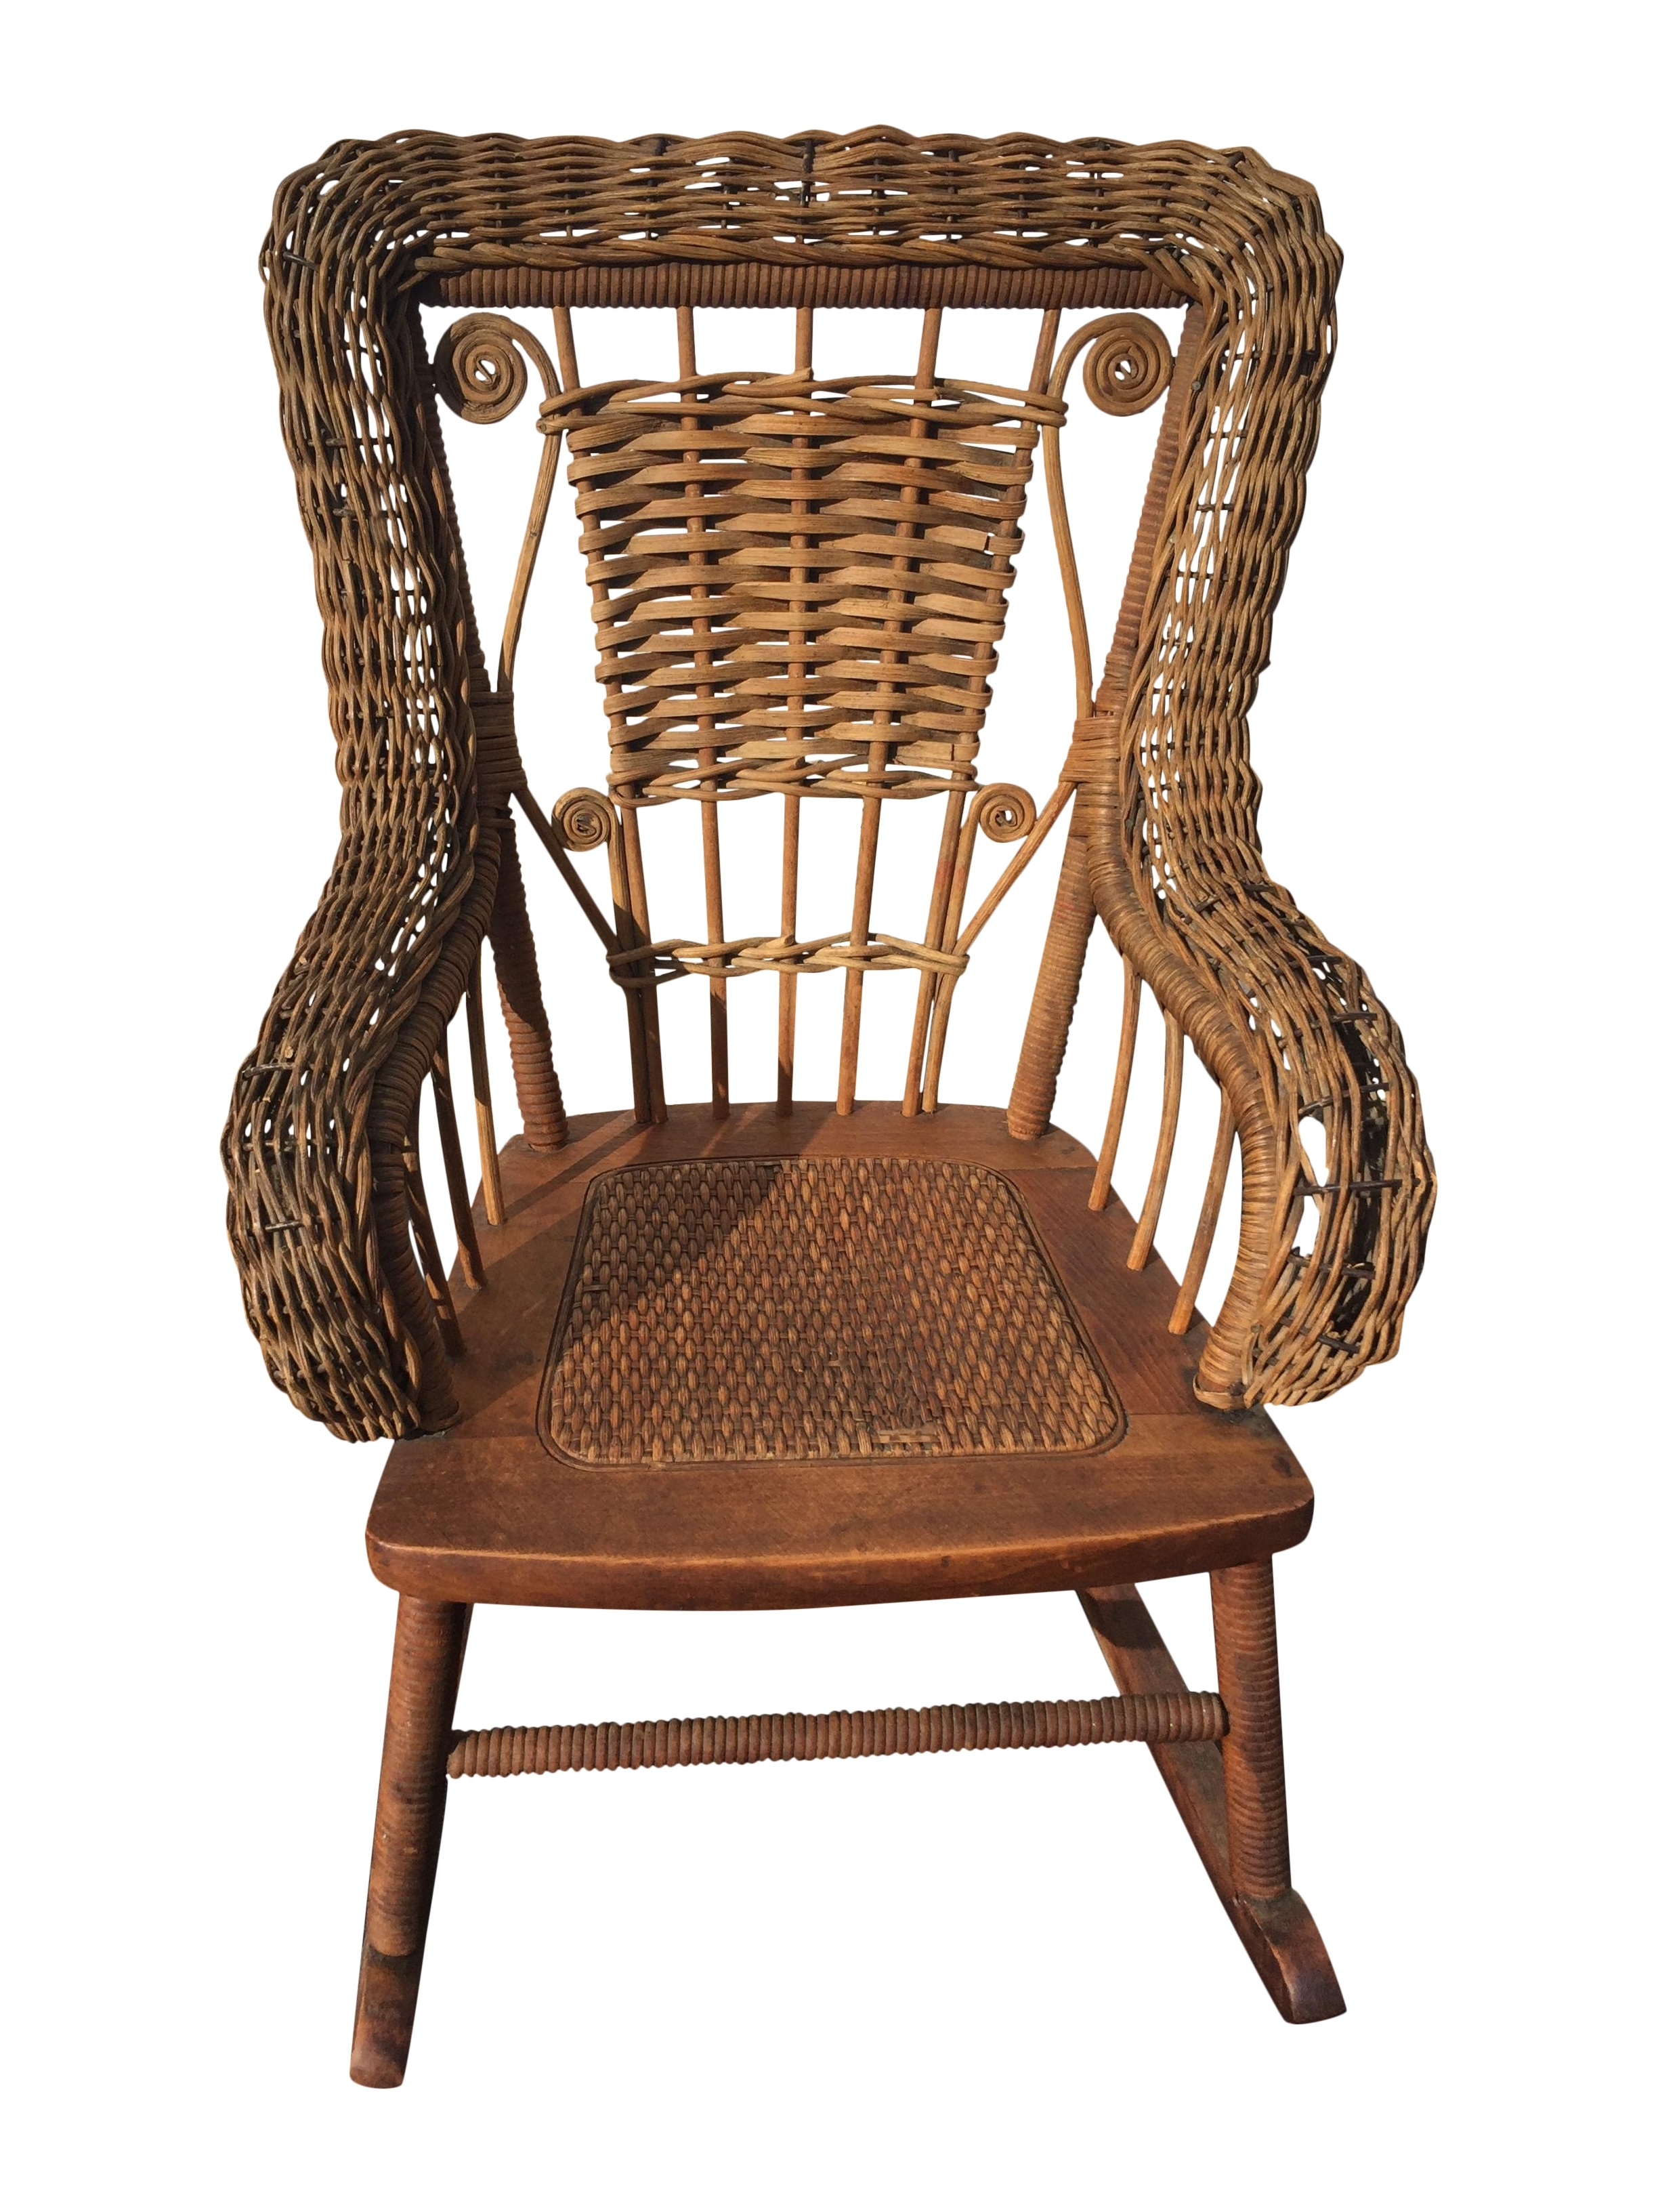 Antique Childrens Wicker Spindle Rocking Chair Chairish Childs Uk In Most Recent Vintage Wicker Rocking Chairs (View 2 of 20)